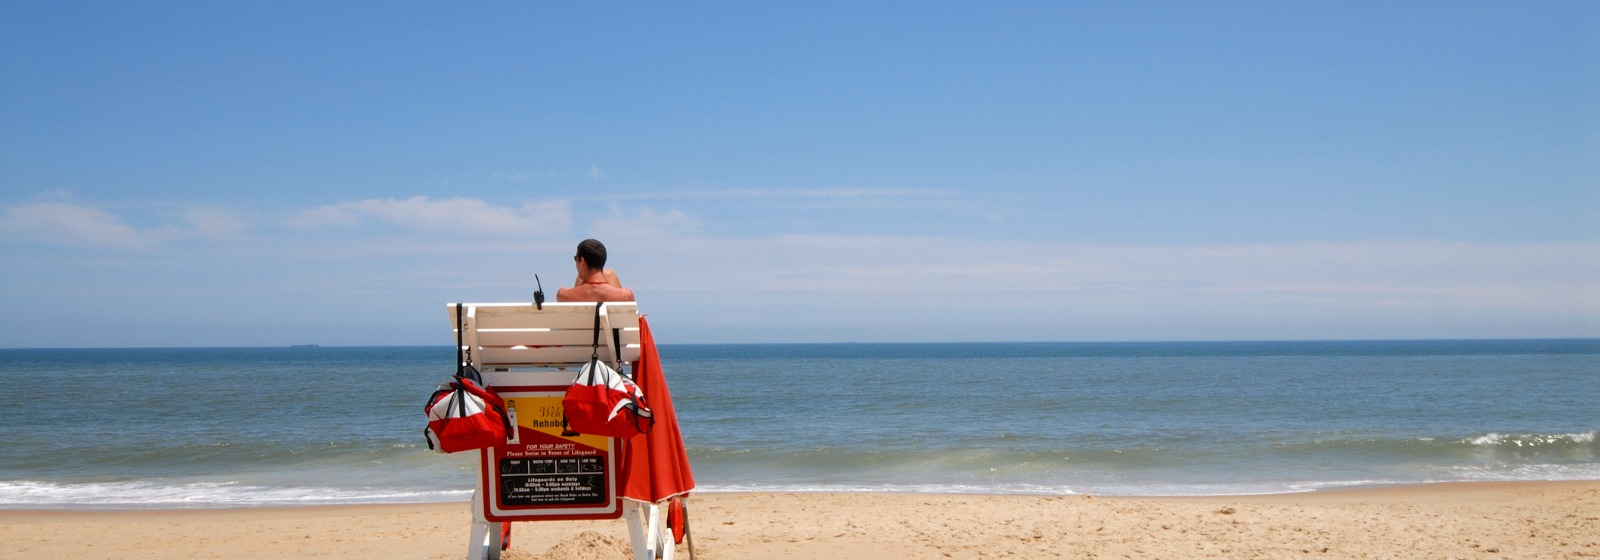 Lifeguard on duty in Rehoboth Beach, DE